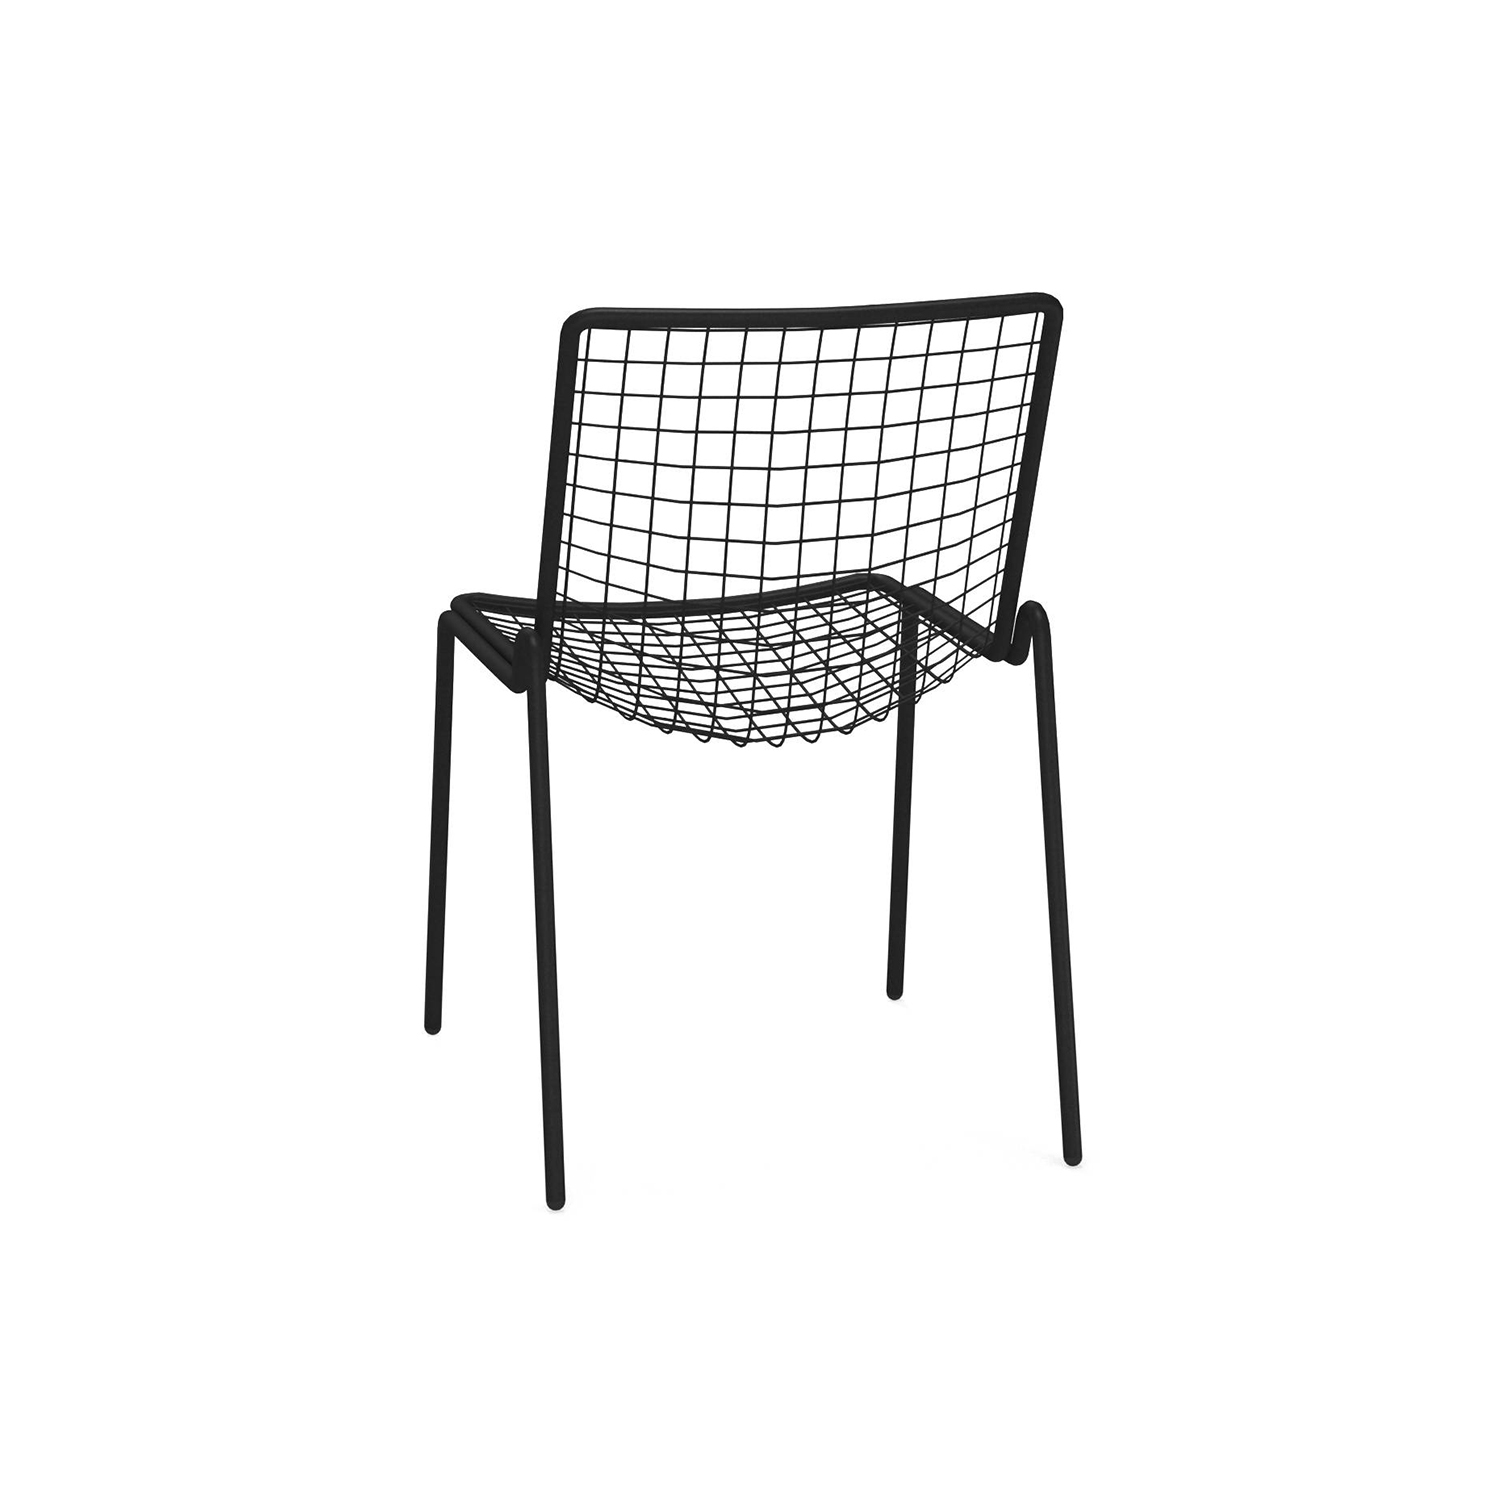 Rio R50 Chair - Set of 4 - <p>RIO R50 is an expertly crafted re-edition of the historic model Rio of the 70s. RIO R50 has a frame in ASFORM steel tube, high-quality steel with high mechanical performance and high resistance to weight. </p> <p>The manufacturing process creates a strongly characterized sign, a letter R, which is identified in the junction between seat and backrest. All structural weldings are made with Mig technology which gives great resistance to stress and rust risk; meanwhile the net, composed by steel wires, is electro-welded to the frame for a more precise aesthetics. </p> <p>Like all EMU products, a cataphoresis pretreatment is provided and then a thermosetting powder coating treatment, which finally produces a layer of homogeneous paint in terms of thickness with a high level of adherence and resistance. Nylon feet supports make it easy to move and protect the product.</p> <p>RIO R50 is a complete seats collection composed by dining chair and armchair, lounge armchair, swing armchair, stool and coffee table.</p>  | Matter of Stuff